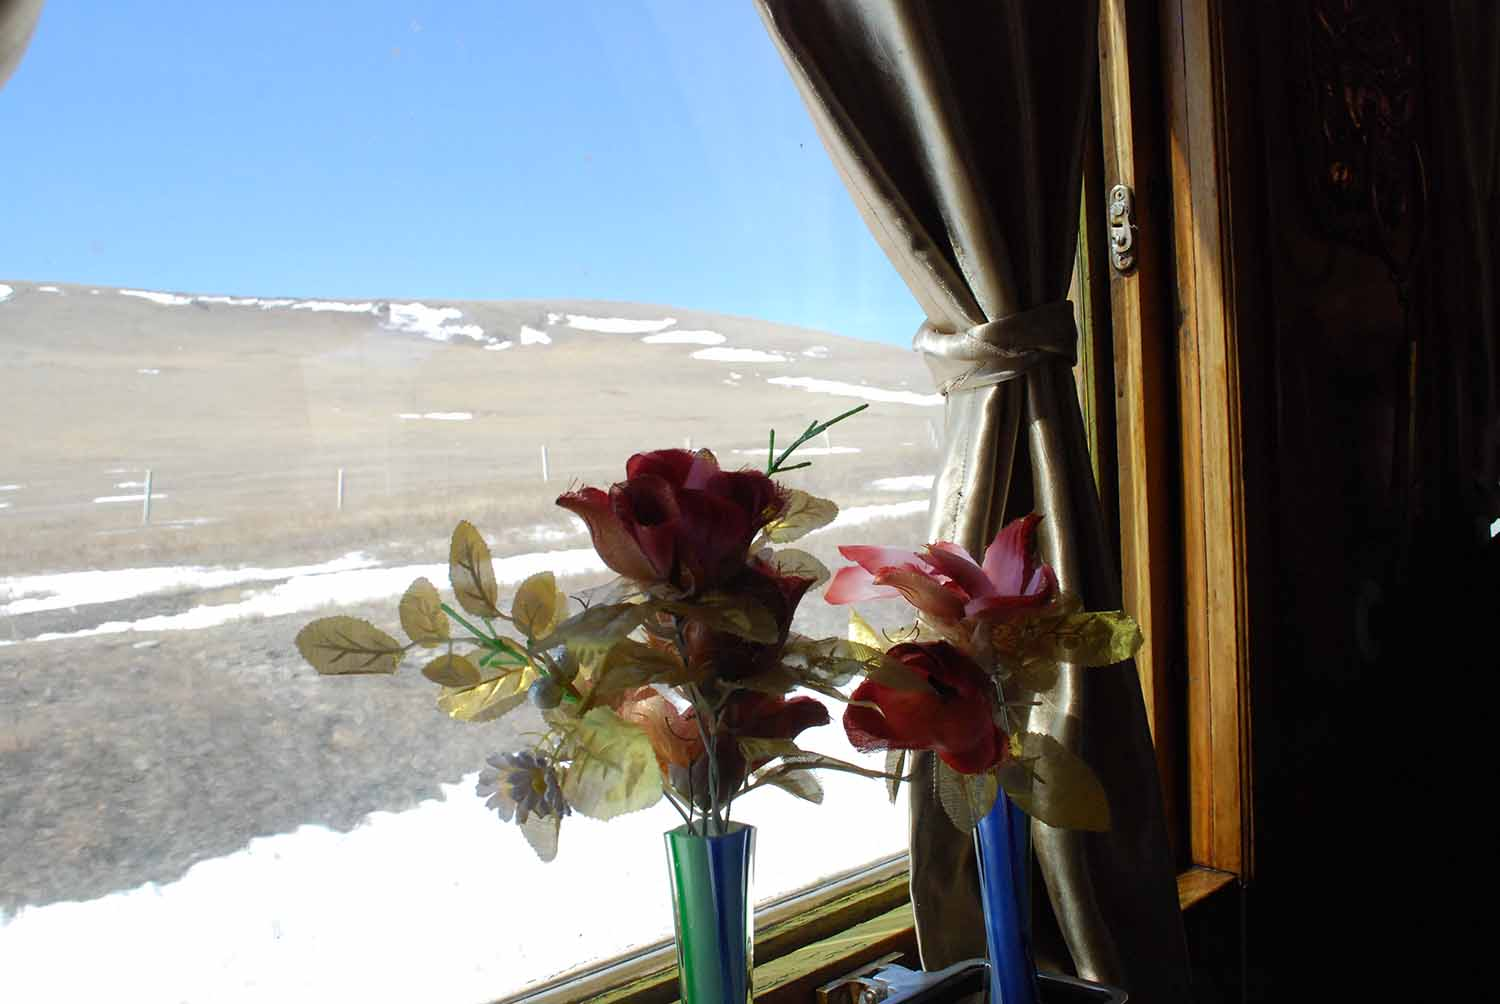 The Mongolian Steppe from the train